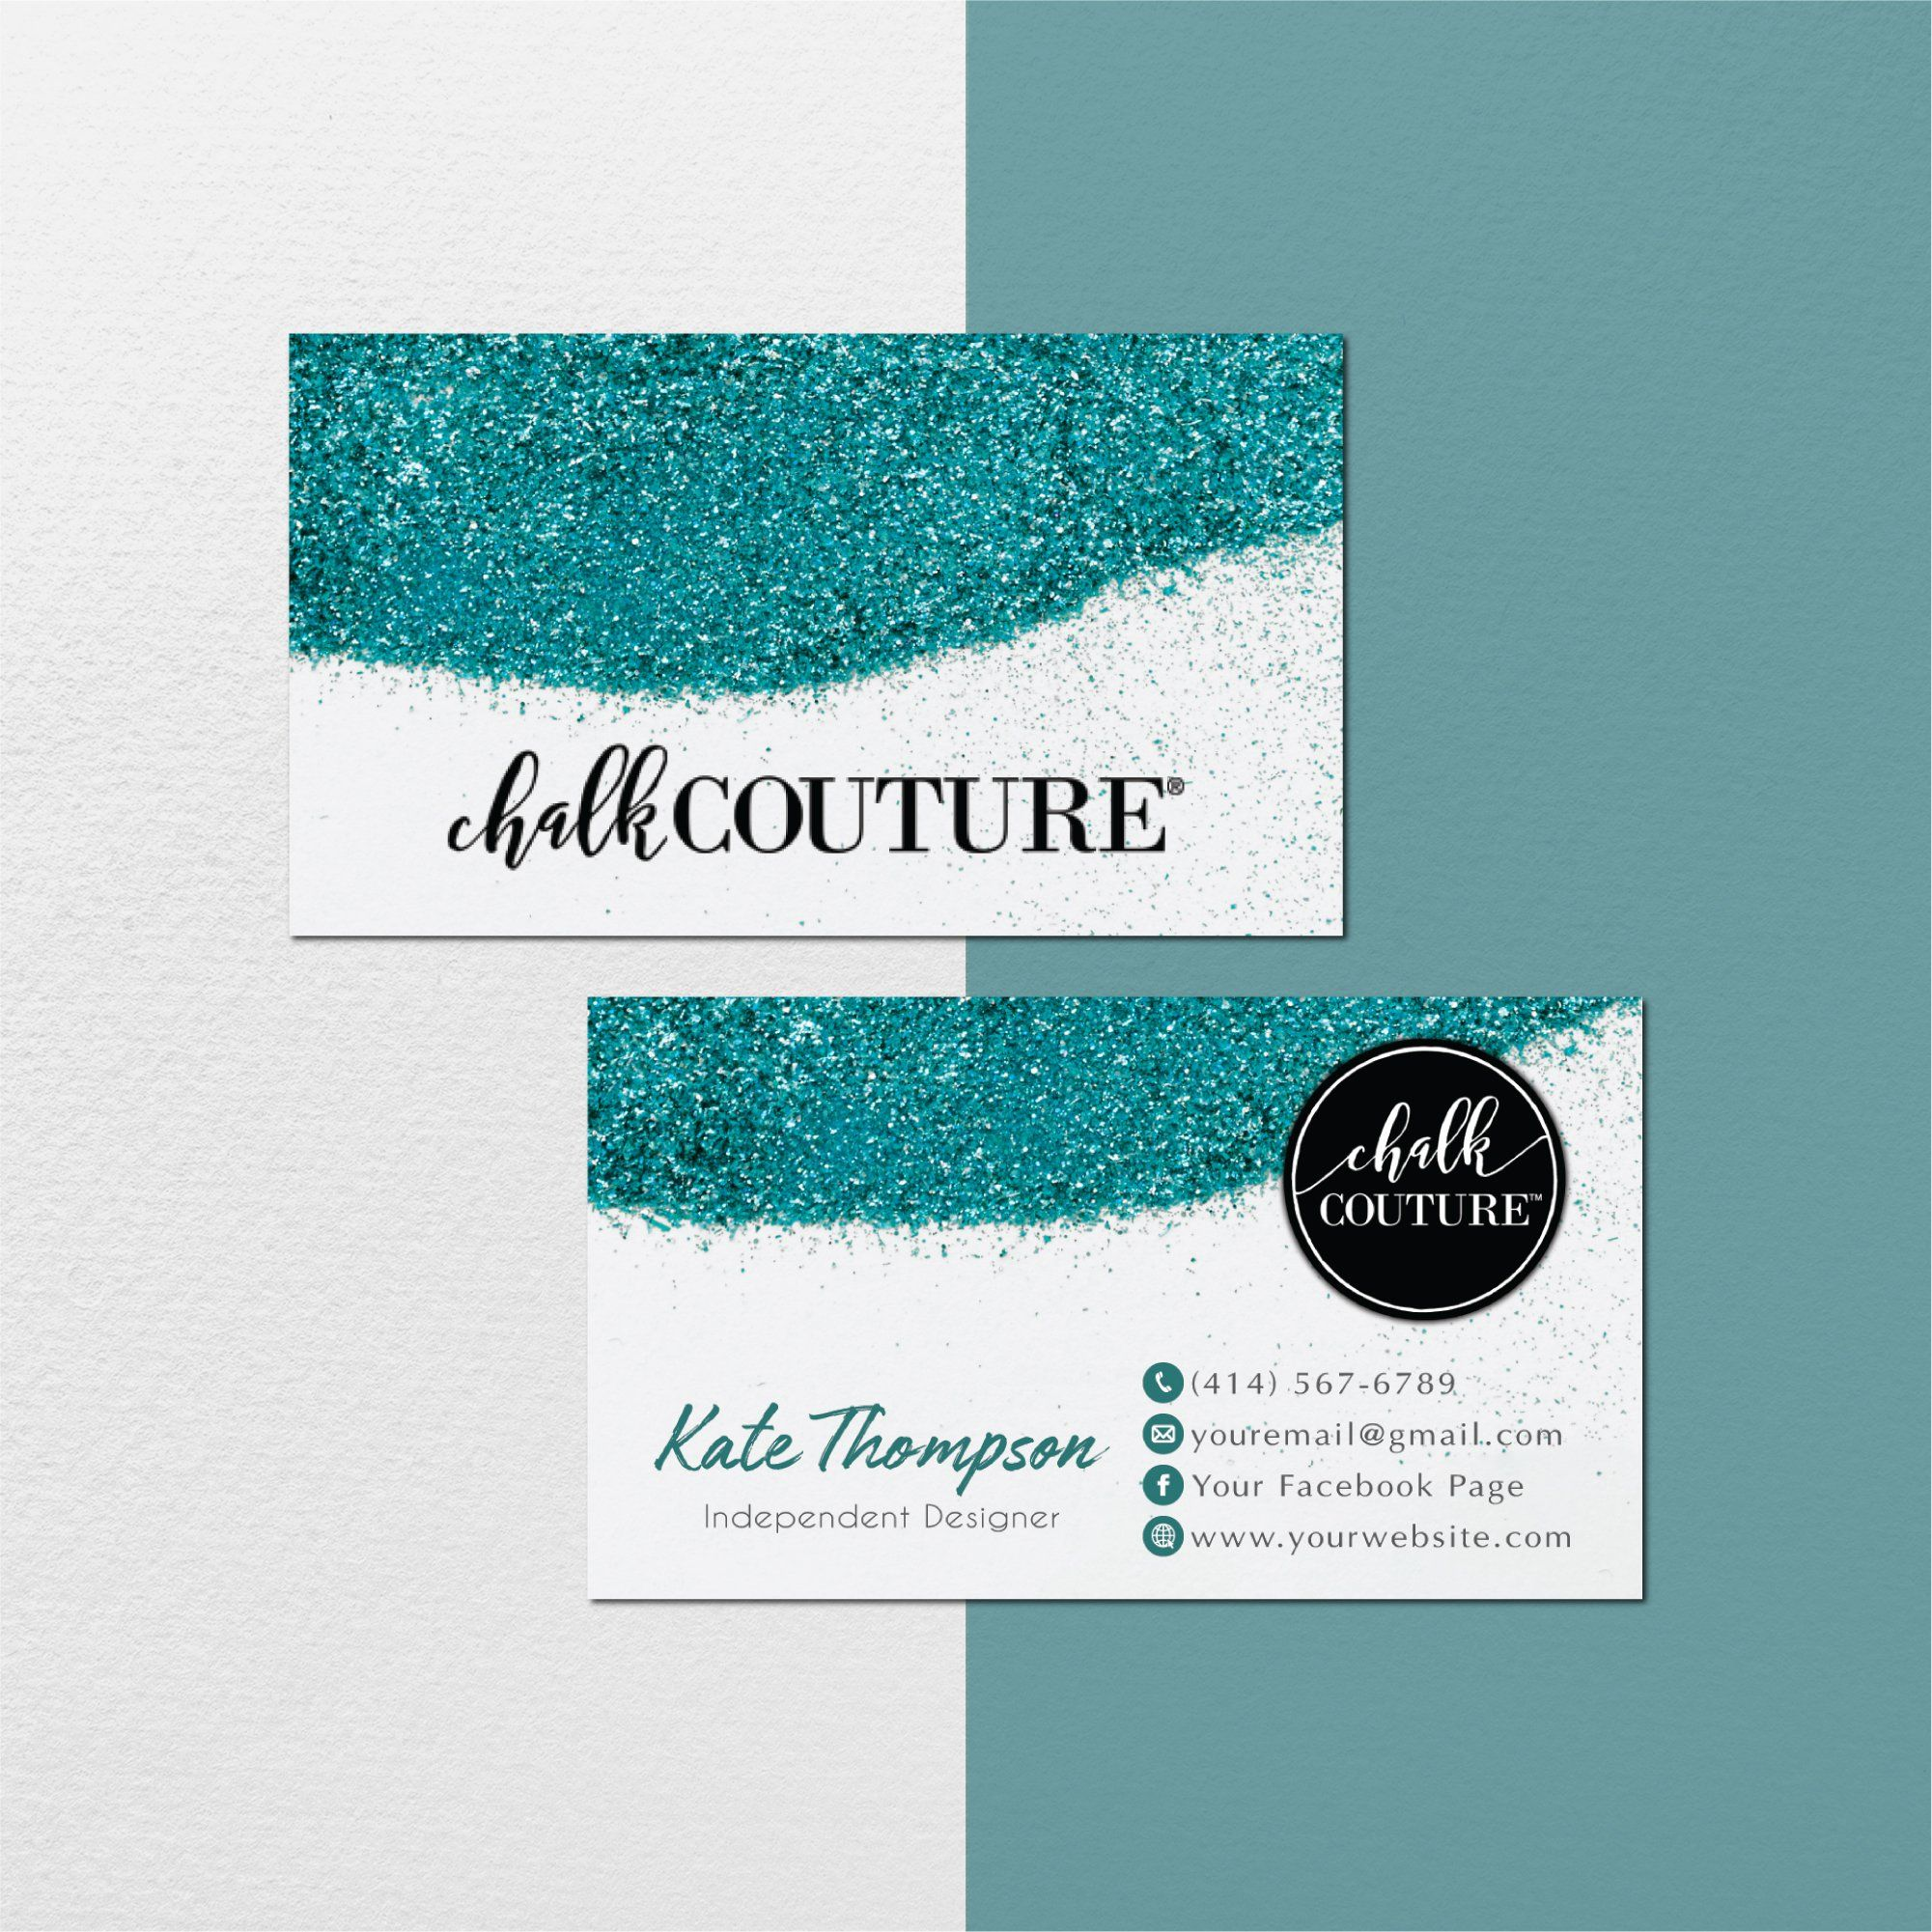 Personalized Chalk Couture Template Glitter Chalk Couture Cards Cc03 Company Business Cards Cards Templates